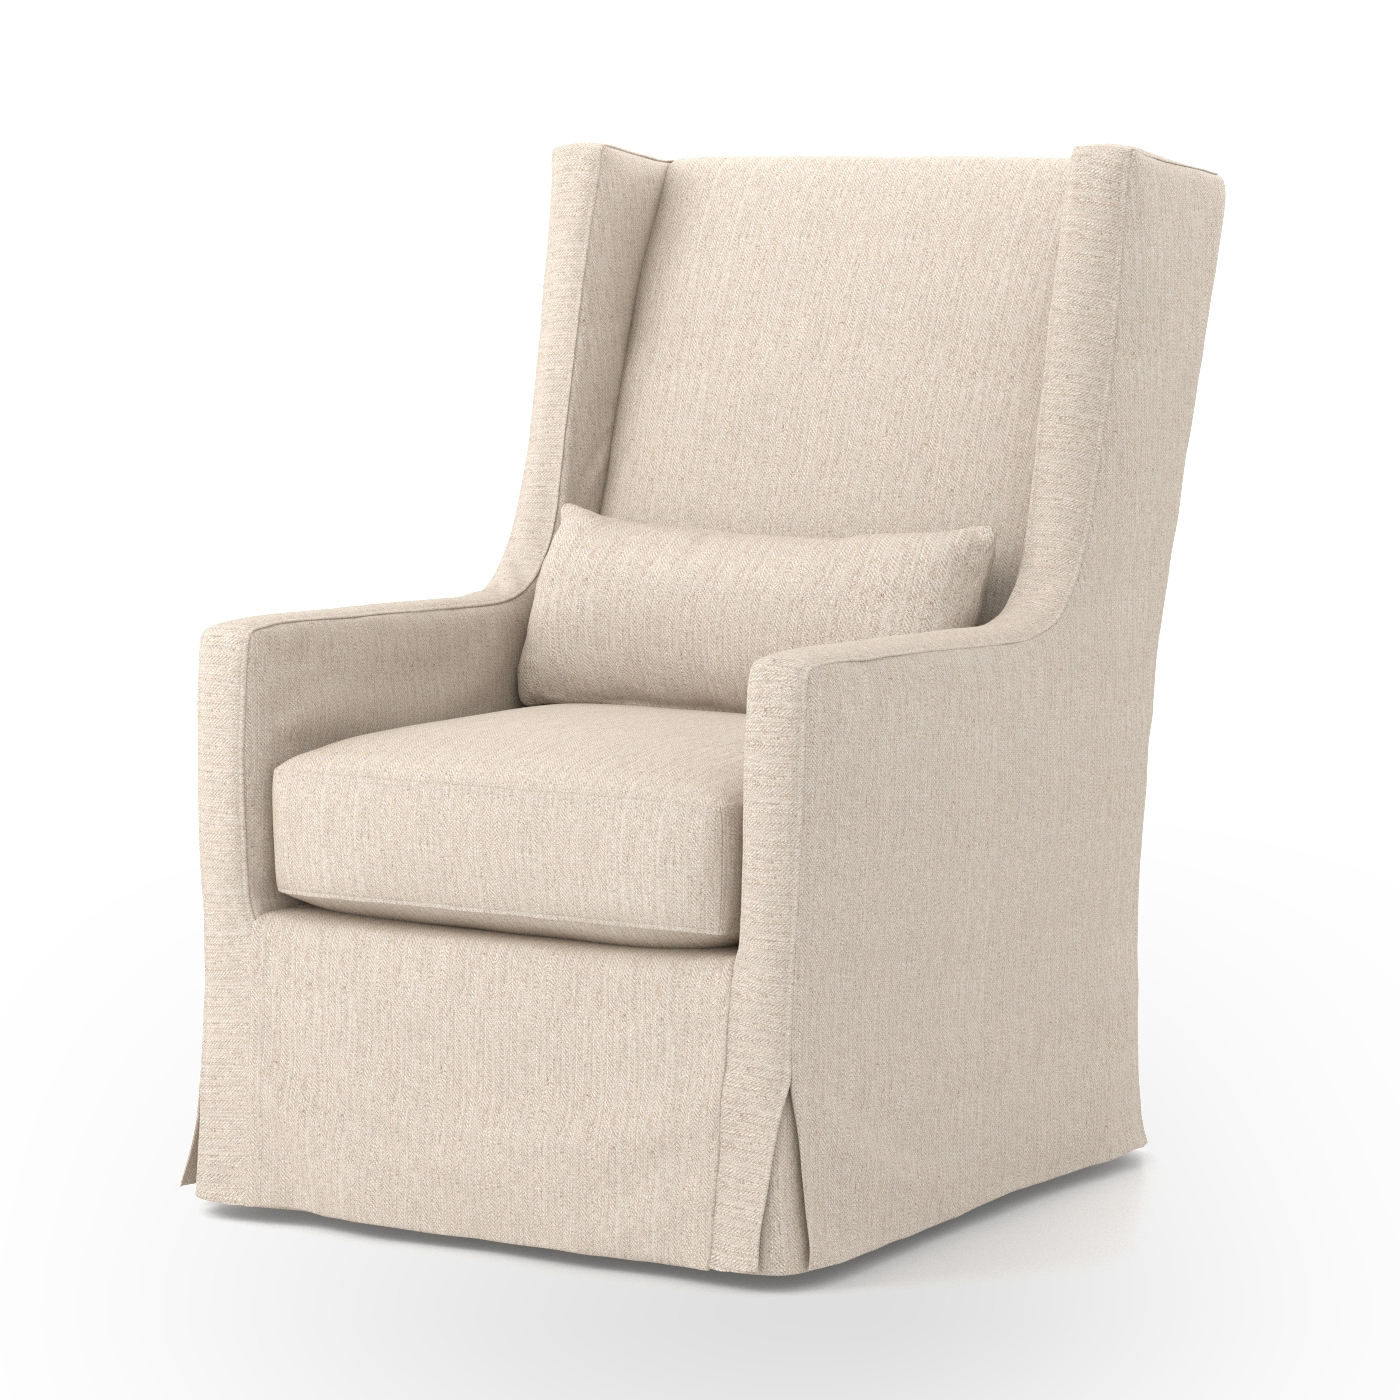 SWIVEL WING CHAIR SLIPCOVERED LINEN FOUR HANDS